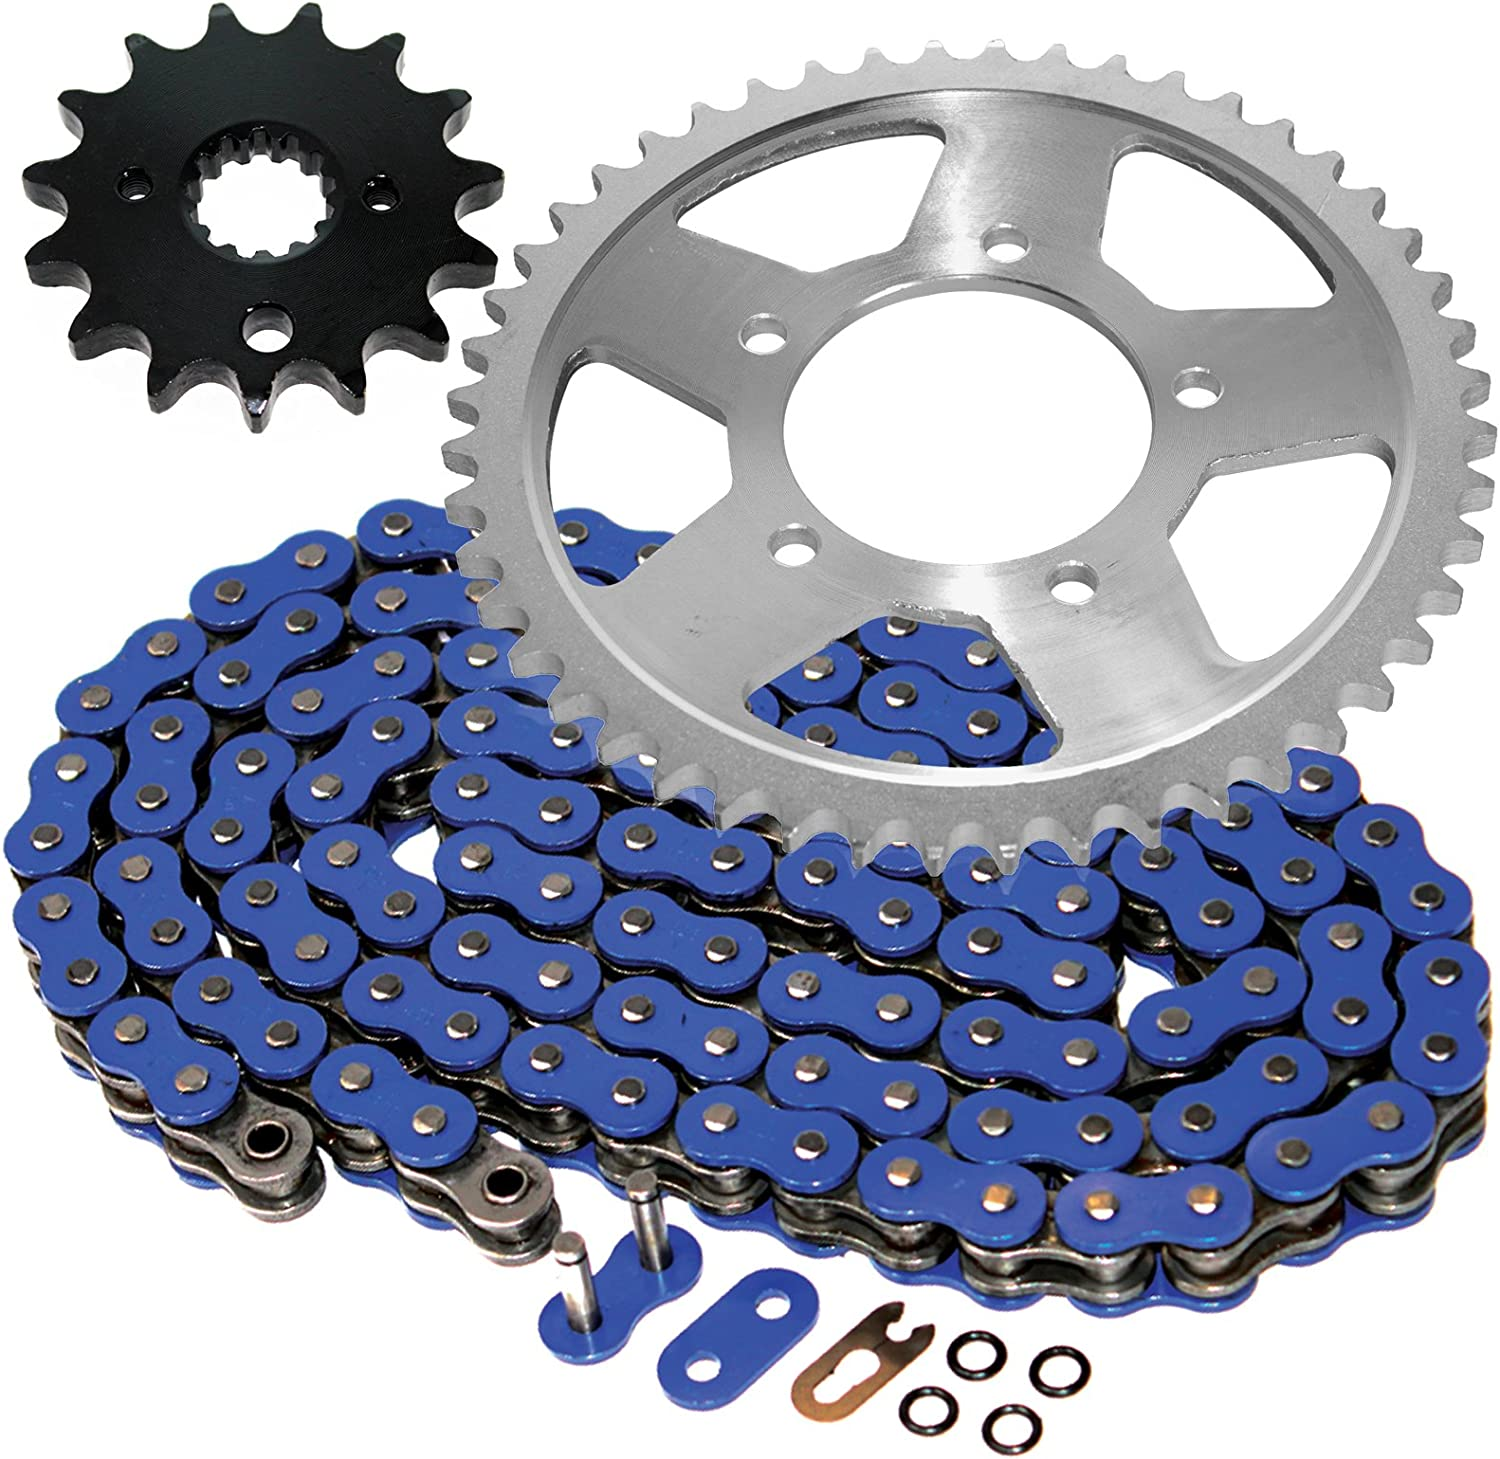 Caltric Blue O-Ring Drive Chain Sprockets with Translated Kit Compatible New item